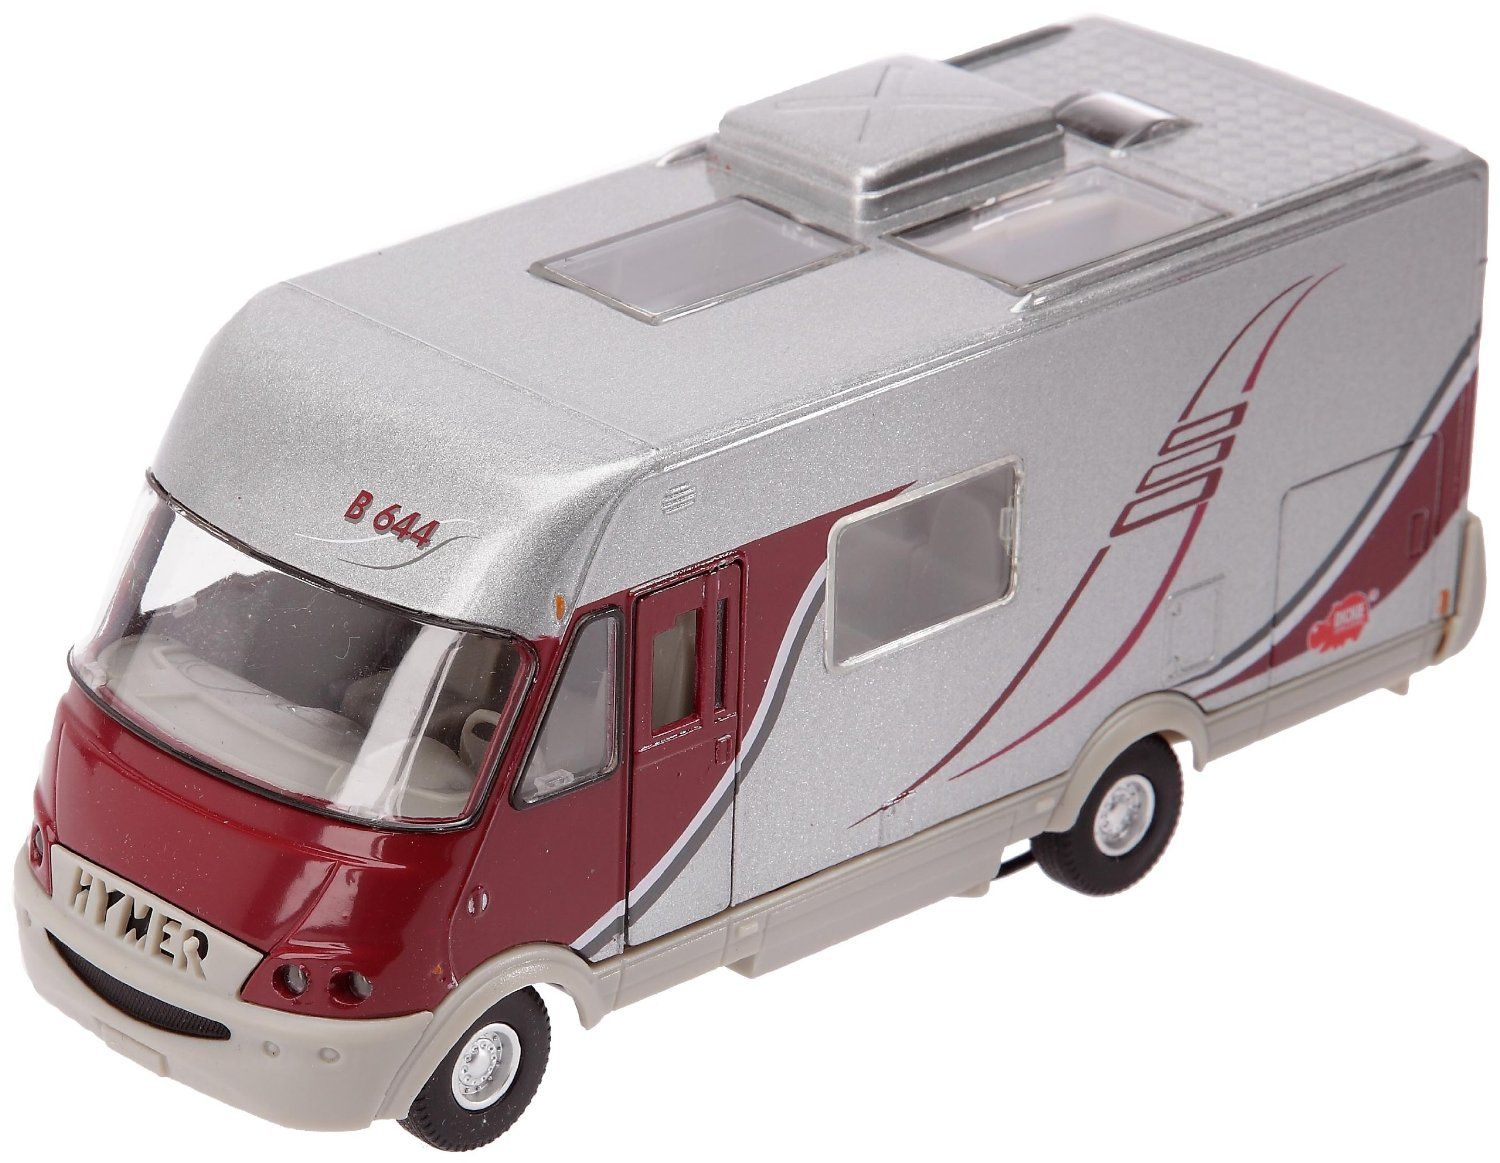 CampersJuguetes Hymer Y Camping Camping Y CarMiniatureAutocaravanas Hymer CarMiniatureAutocaravanas CarMiniatureAutocaravanas CampersJuguetes Y Hymer Camping ZPXN0k8wnO